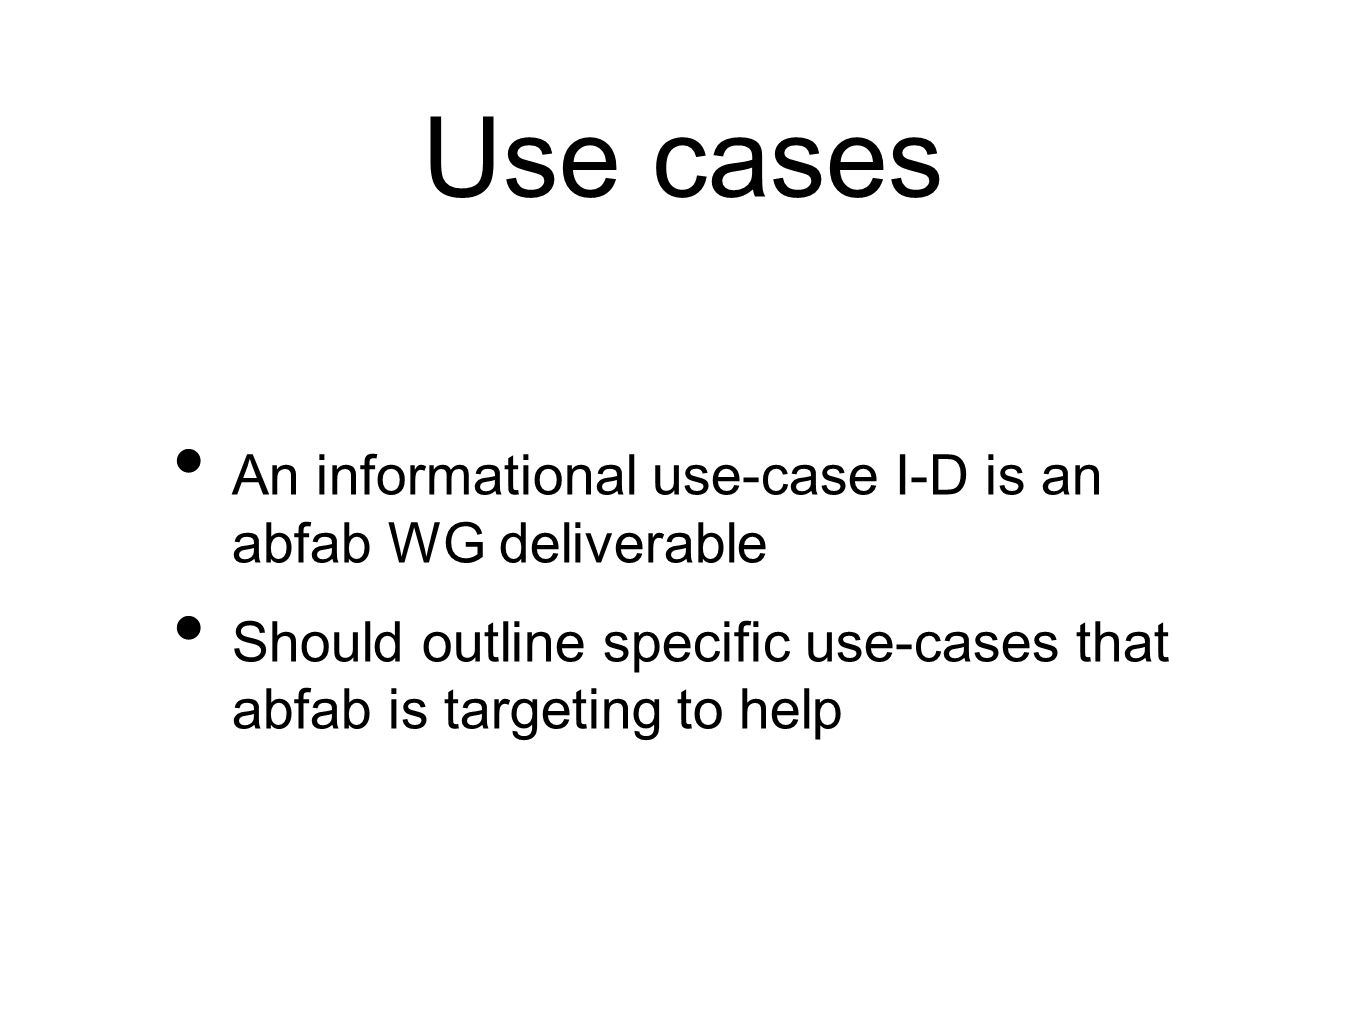 Use cases An informational use-case I-D is an abfab WG deliverable Should outline specific use-cases that abfab is targeting to help